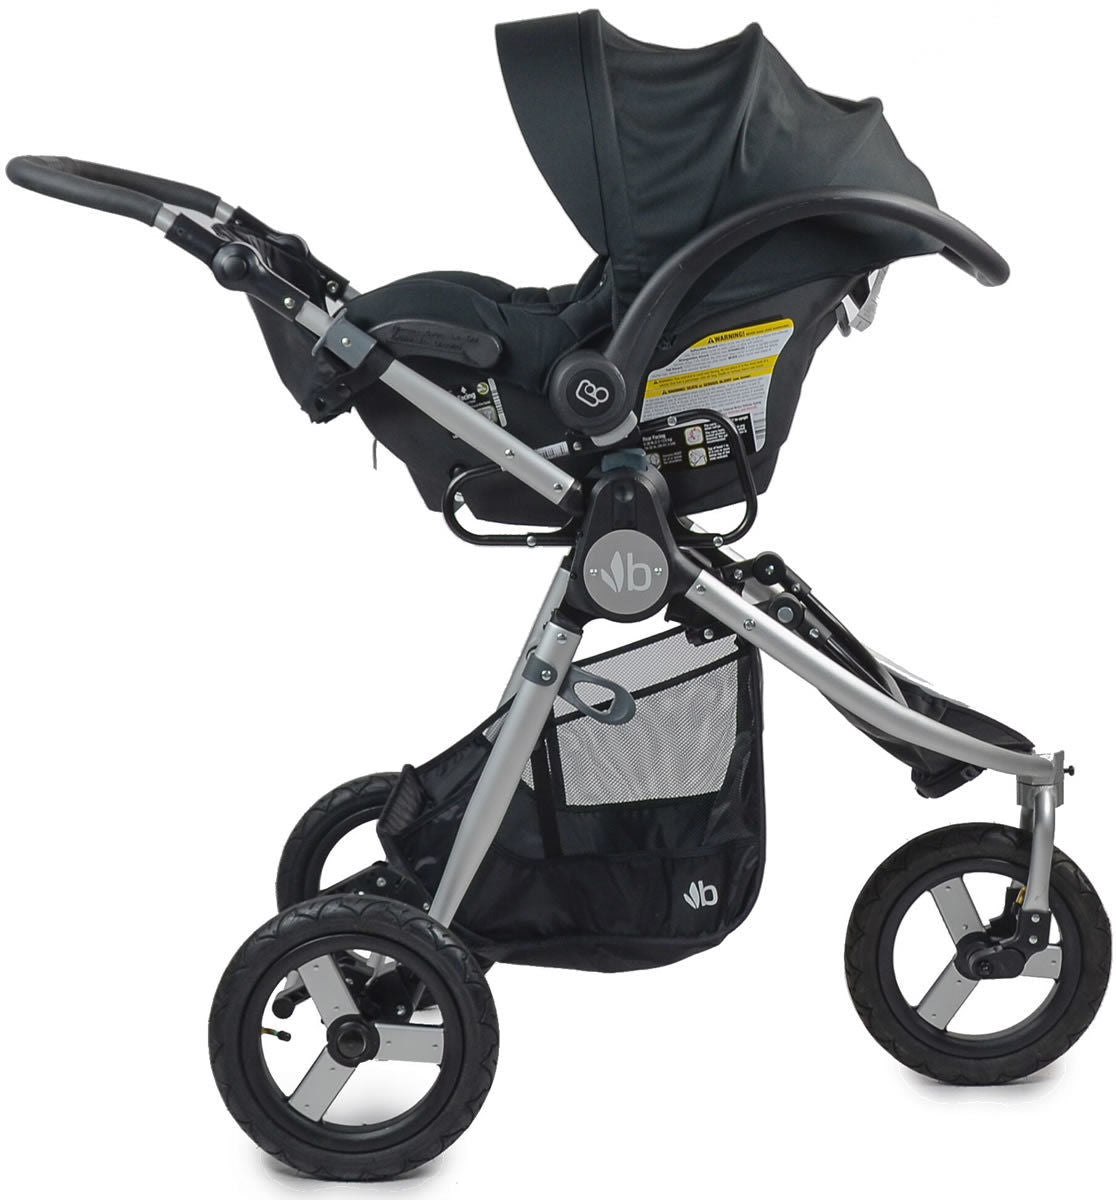 Bumbleride Indie Speed Single Car Seat Adapter - Maxi Cosi, Cybex, and Nuna